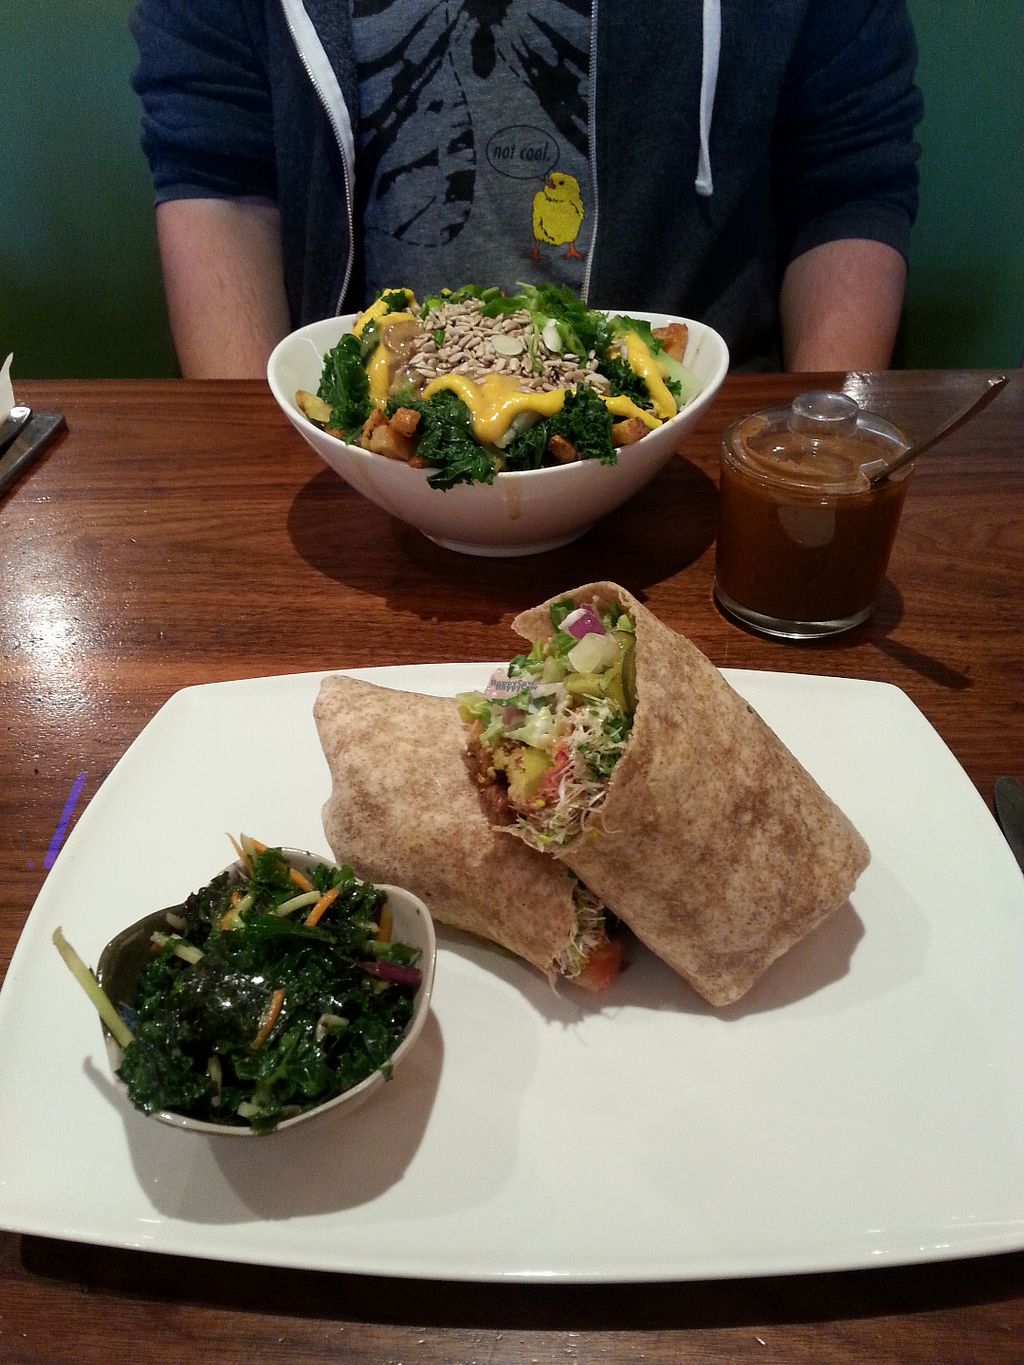 """Photo of Fresh on Eglinton  by <a href=""""/members/profile/Vegan%20GiGi"""">Vegan GiGi</a> <br/>Banquet burger with kale slaw (monthly special), and green poutine with hot sauce. YUM <br/> October 10, 2016  - <a href='/contact/abuse/image/45740/180909'>Report</a>"""